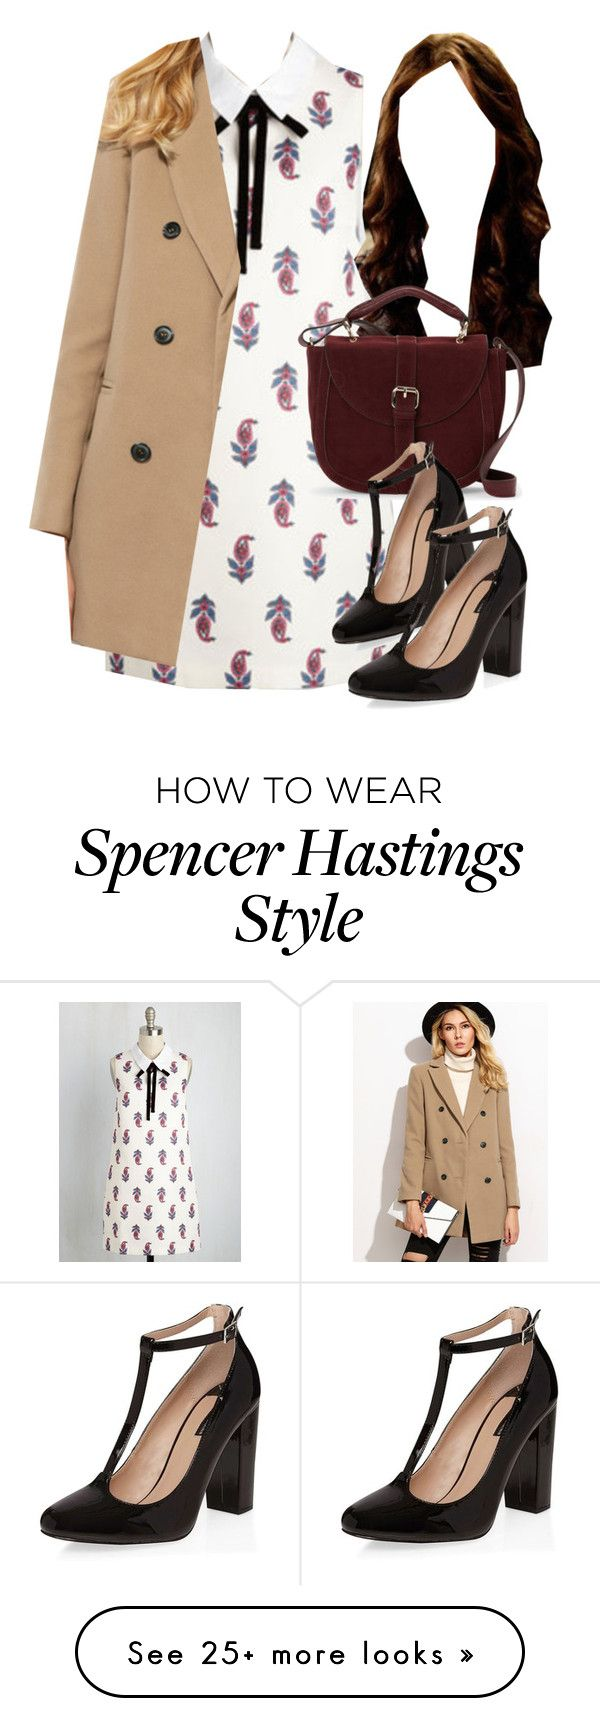 """""""Spencer Hastings inspired outfit with requested dress"""" by liarsstyle on Polyvore featuring IMoshion, Dorothy Perkins, date, Semi and WF"""